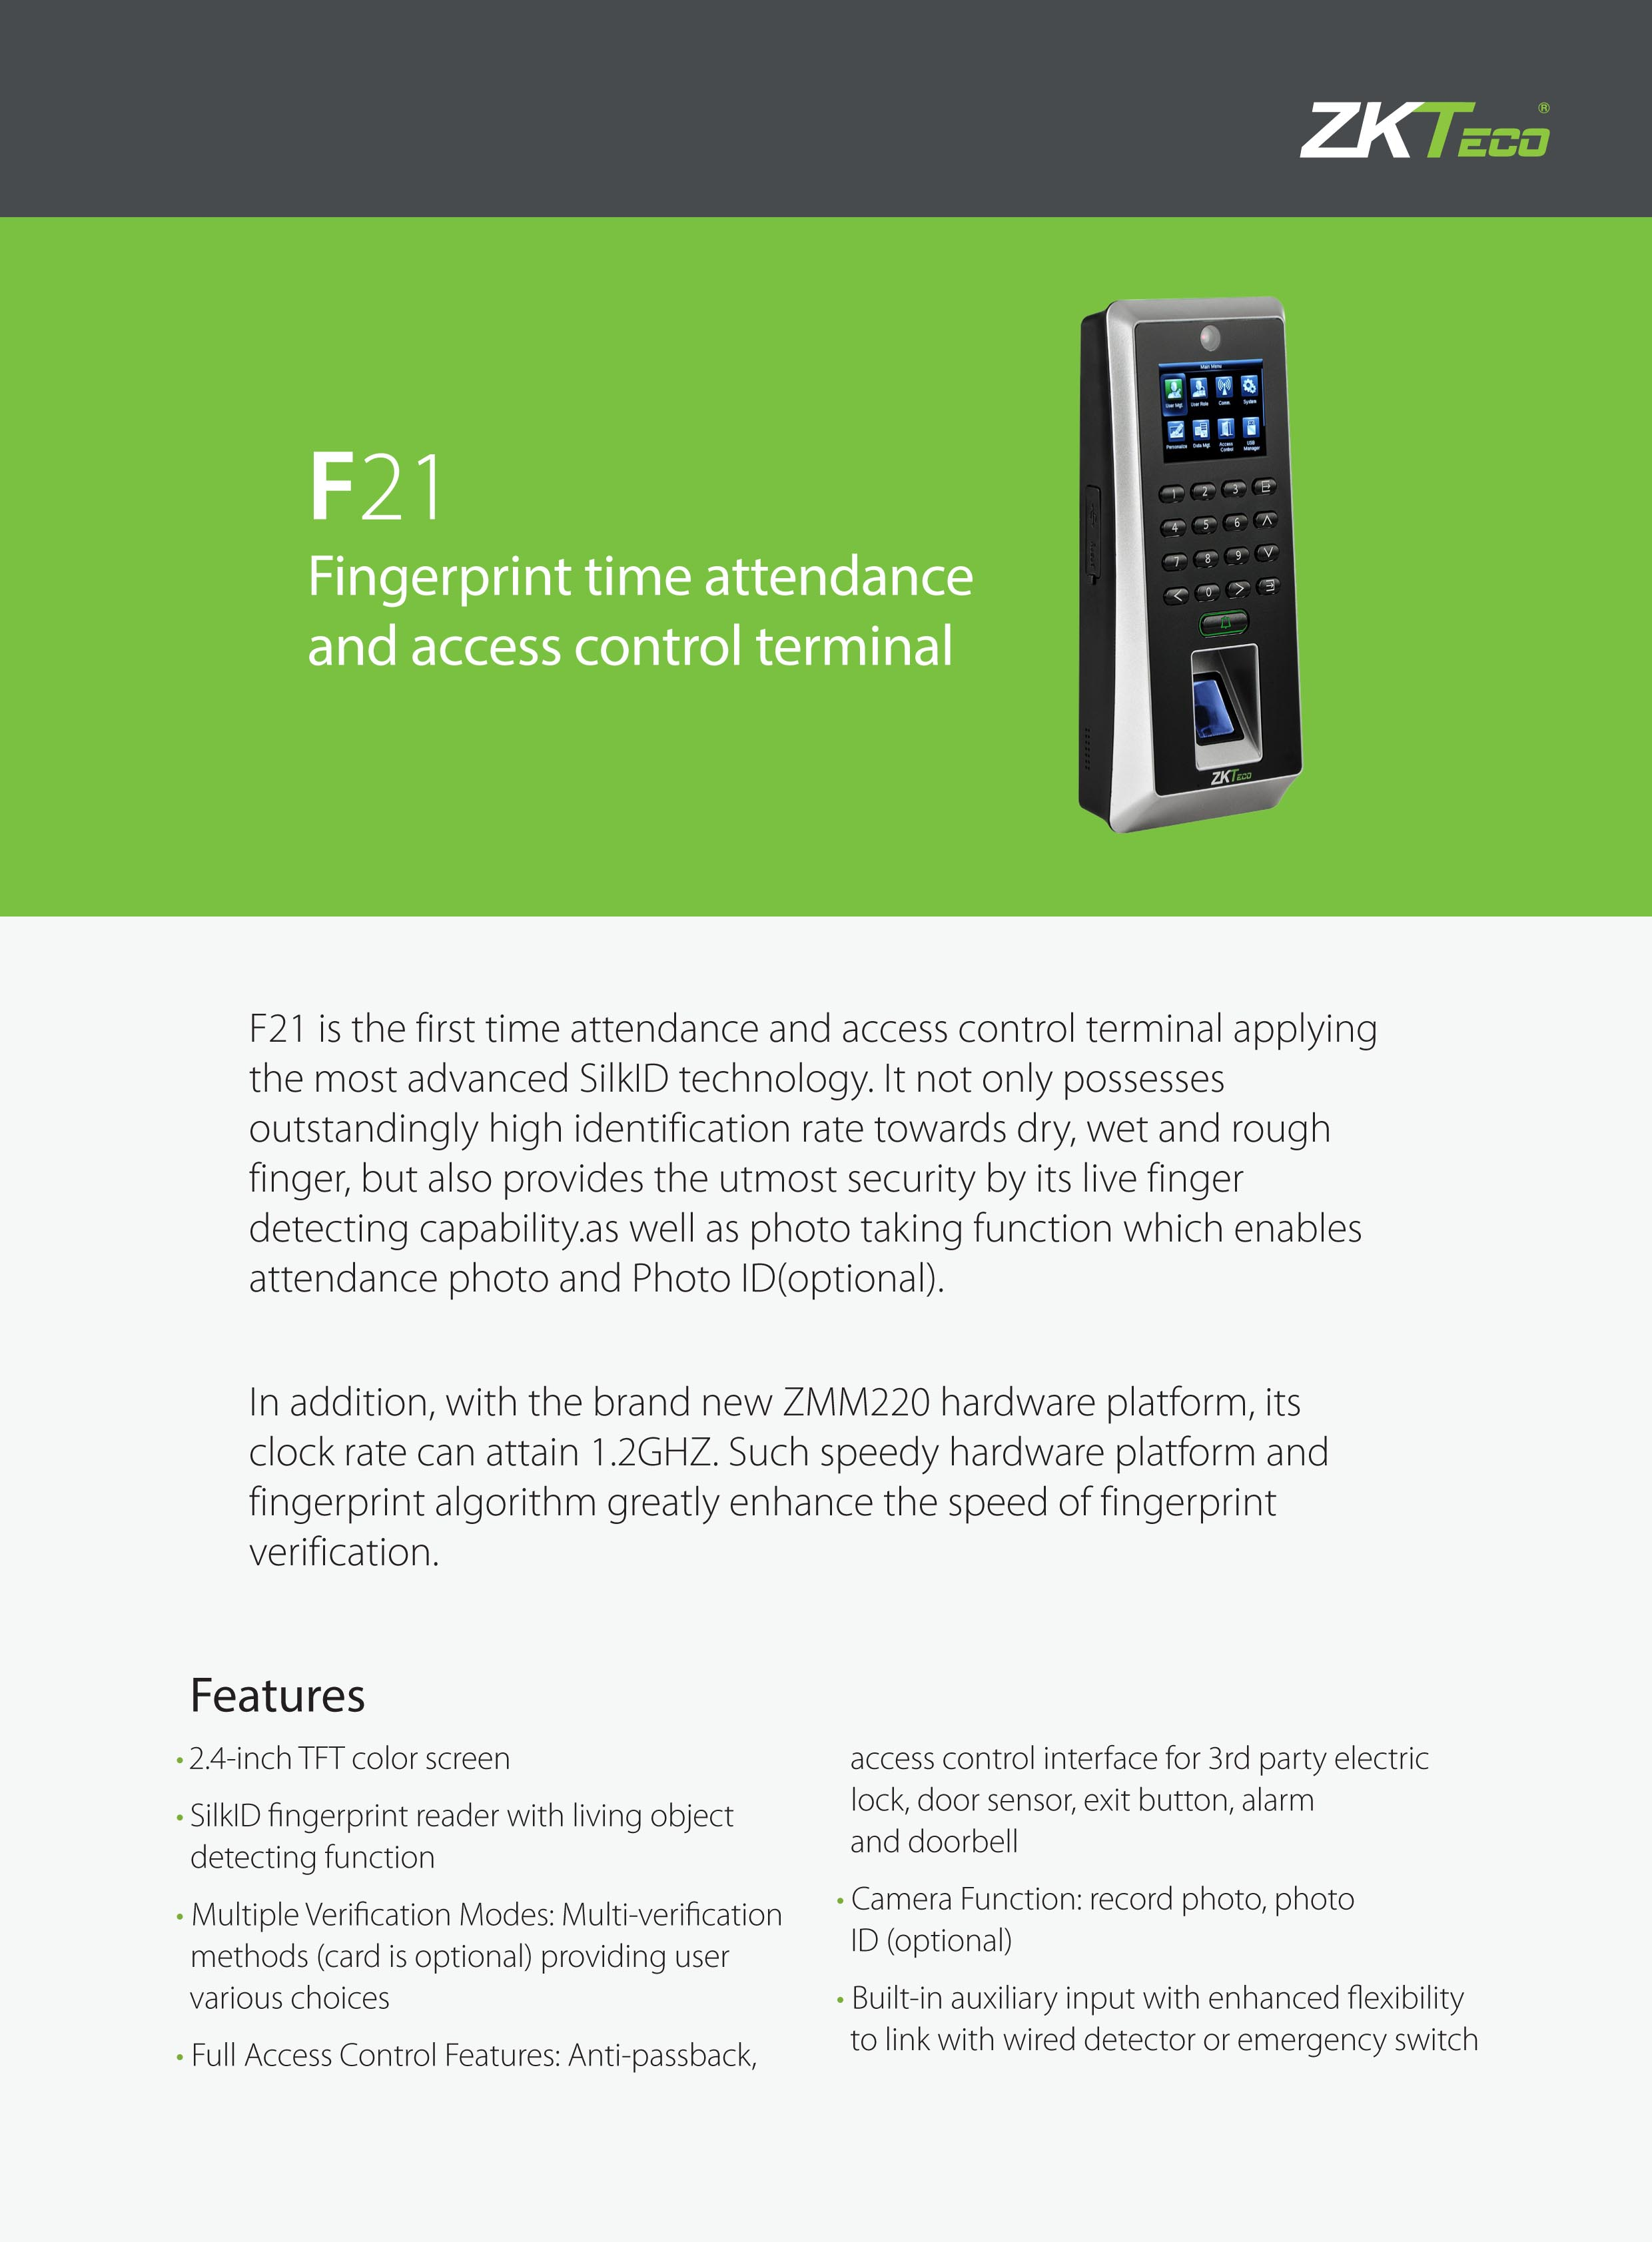 ZKTeco F21 Fingerprint Time Attendance and Access Control